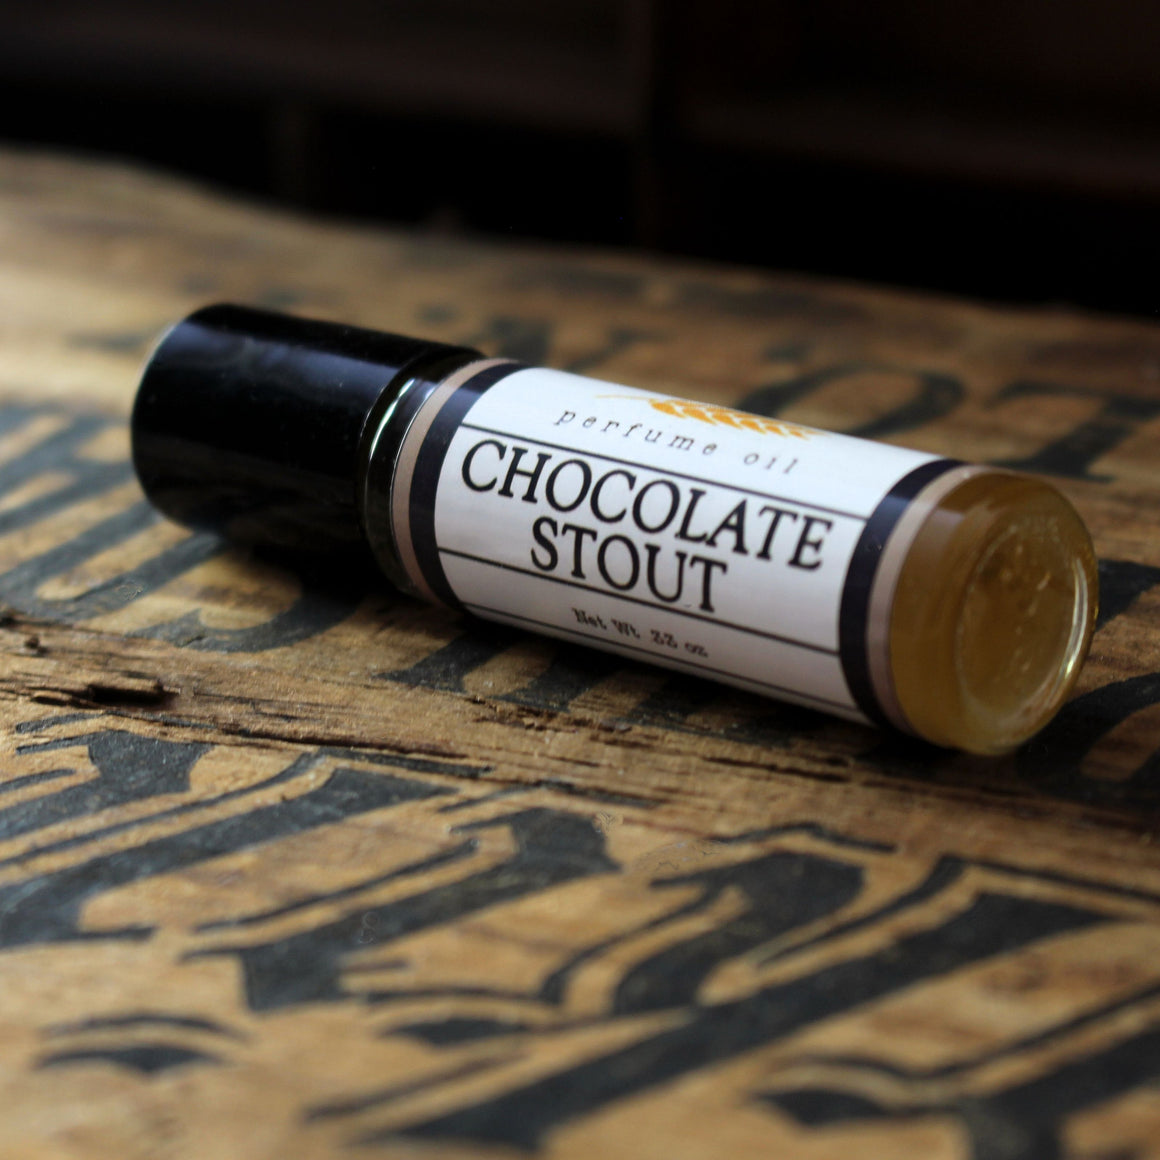 Chocolate Stout Perfume Oil